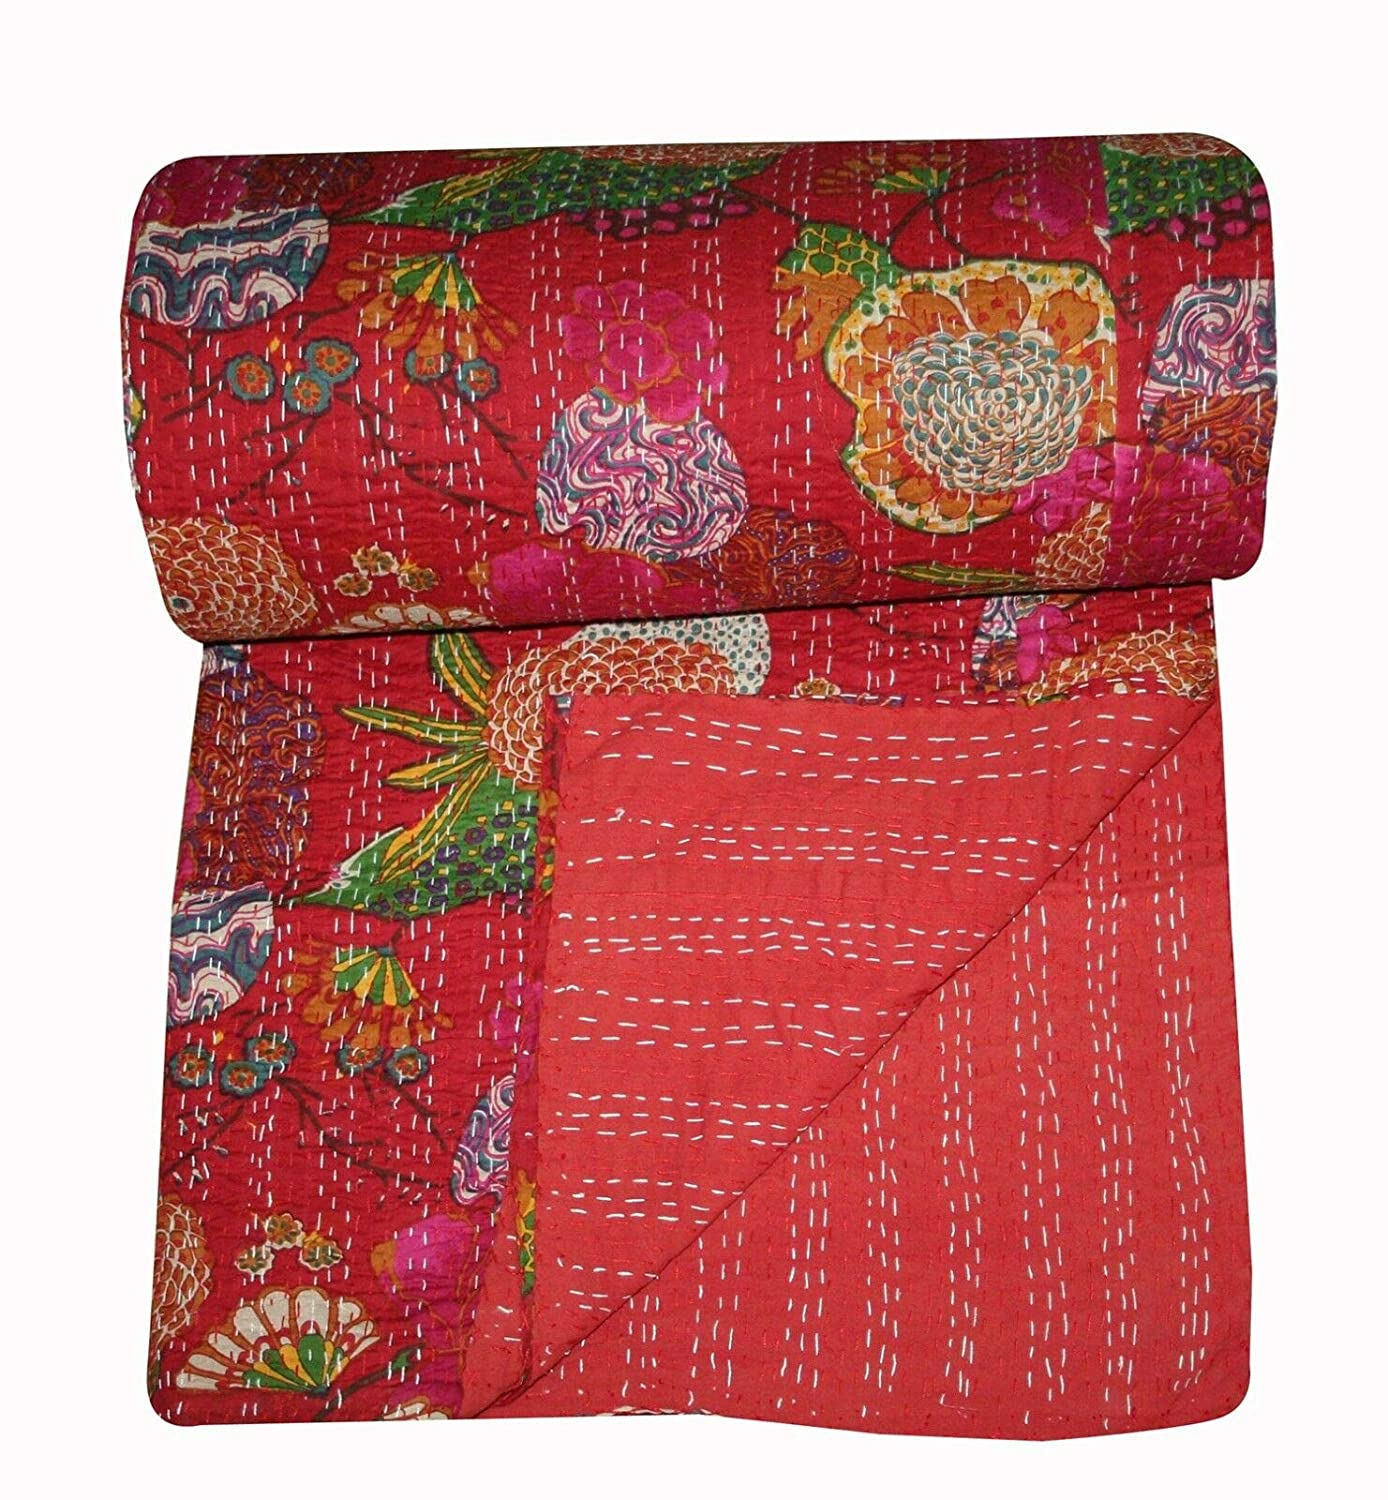 Red Floral Print Kantha Throw Indian Handmade Floral Print Printed Kantha Quilt Bohemian Kantha Throw Indian Bedspread Floral Bed Cover.Vintage Cotton Gudri Twin Size Kantha Bedding